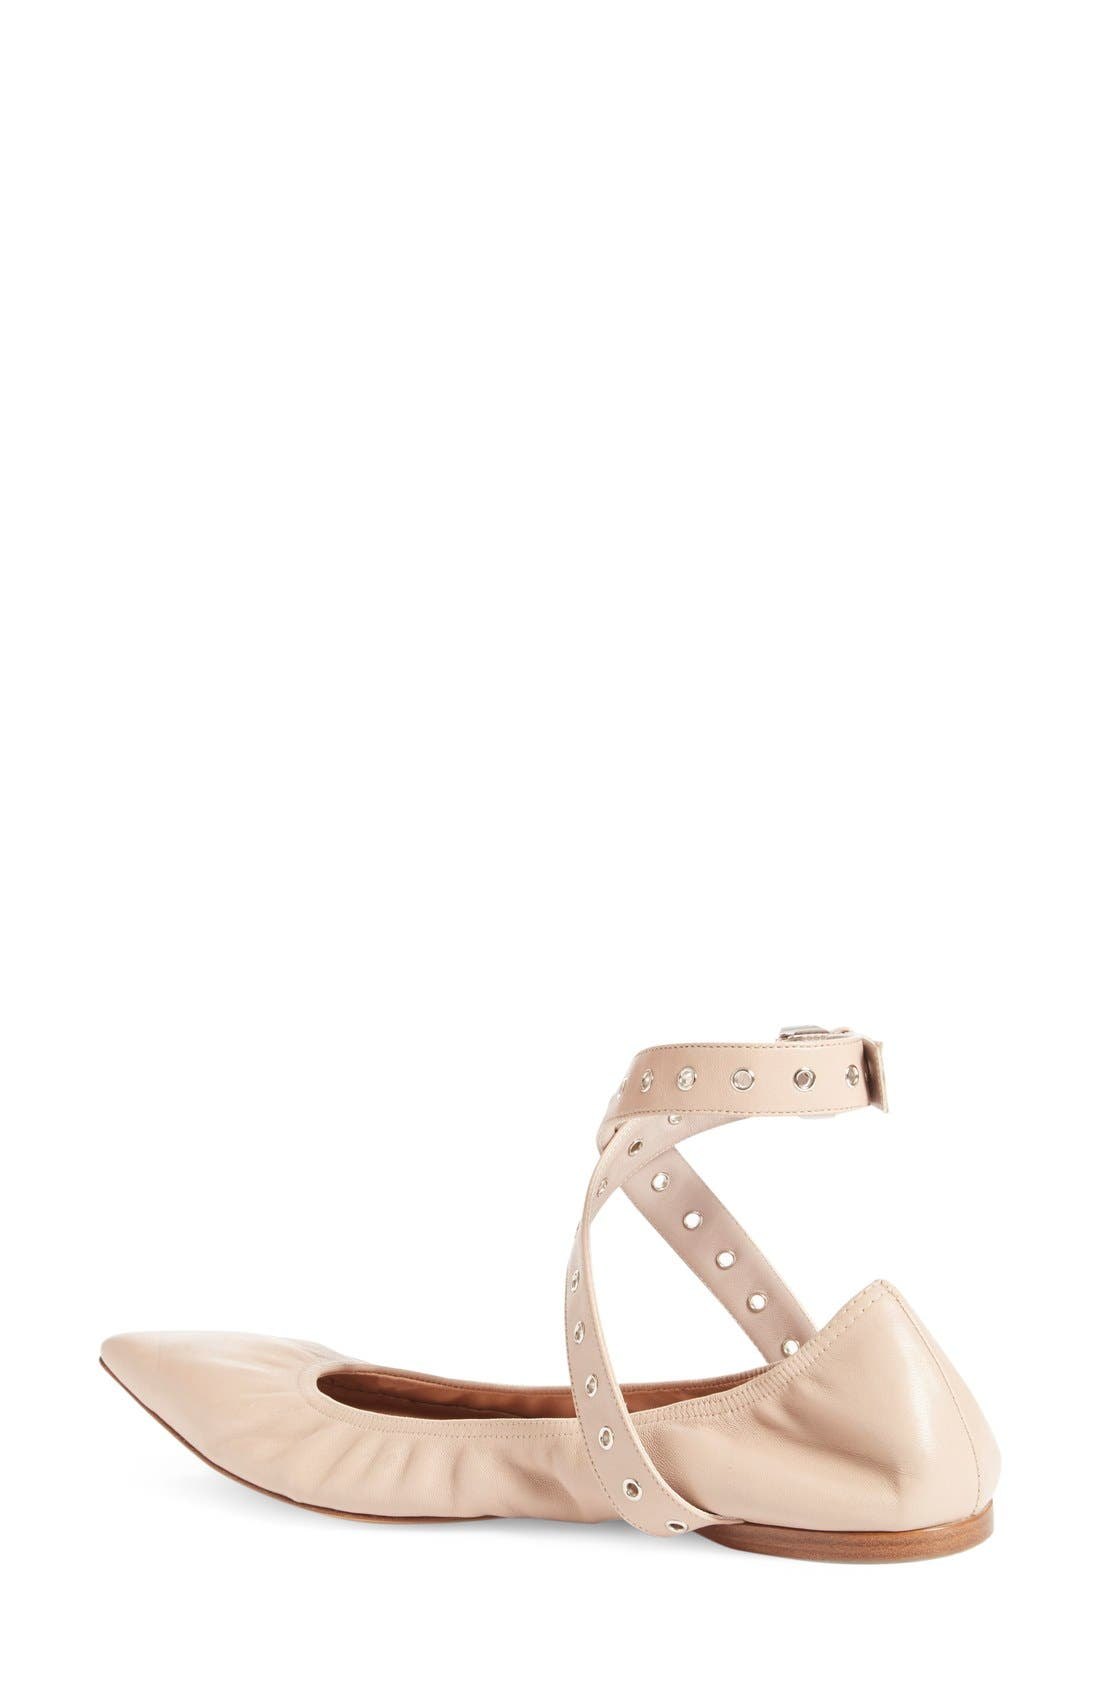 'Love Latch' Pointy Toe Flat,                             Alternate thumbnail 2, color,                             Nude Leather